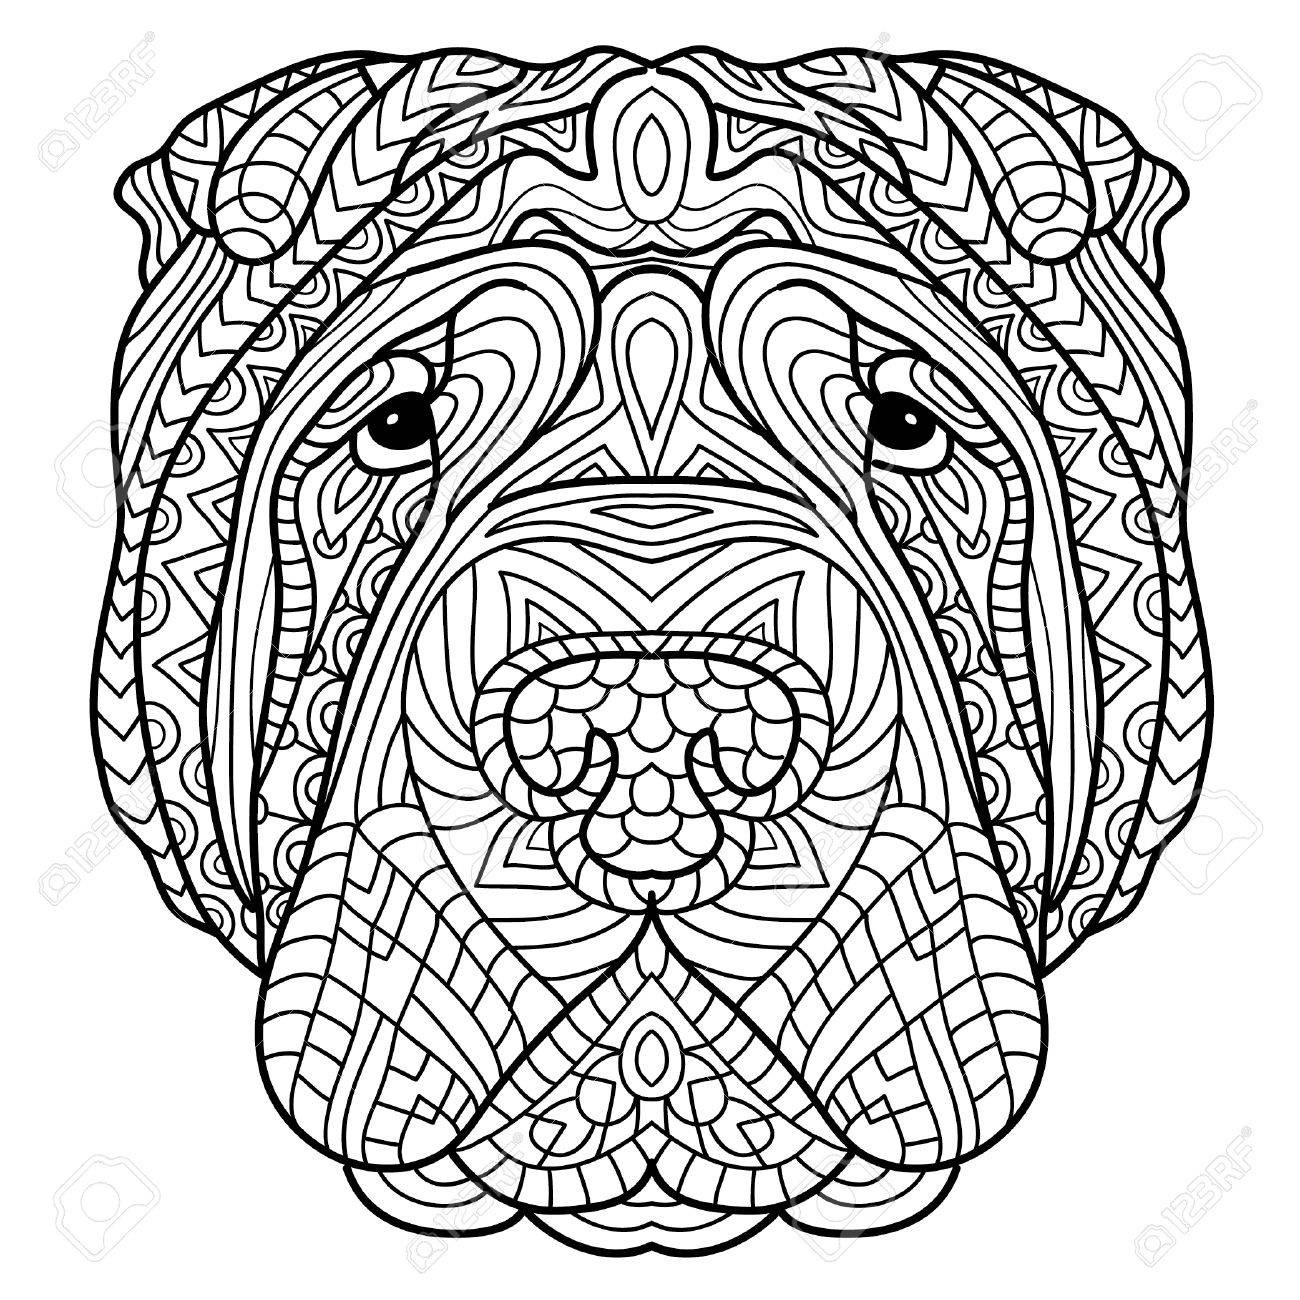 Coloring Book For Adults Dog The Head Of A Sharpay With Tribal